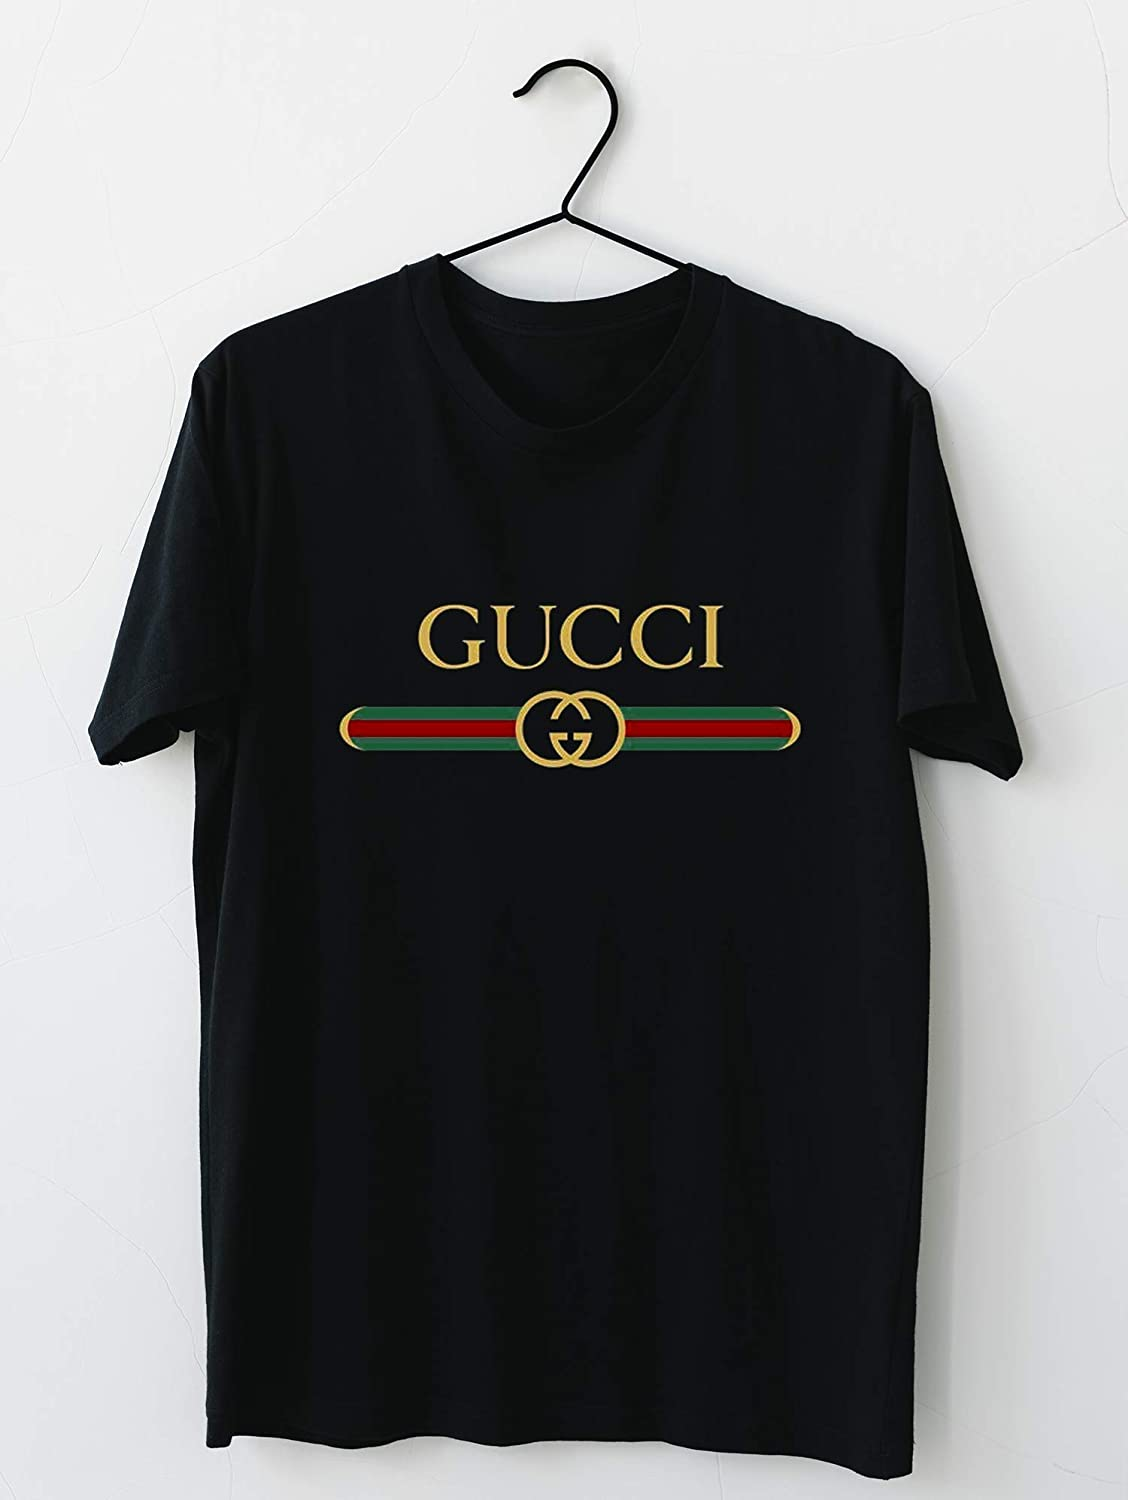 7e4db7f17258 Amazon.com: Cala-Gucci-Ziko Unisex Toddler Kids Boys - Girls Luxury Brand  Inspired Design - T-Shirt for men women gift father mother hoodie tank:  Handmade